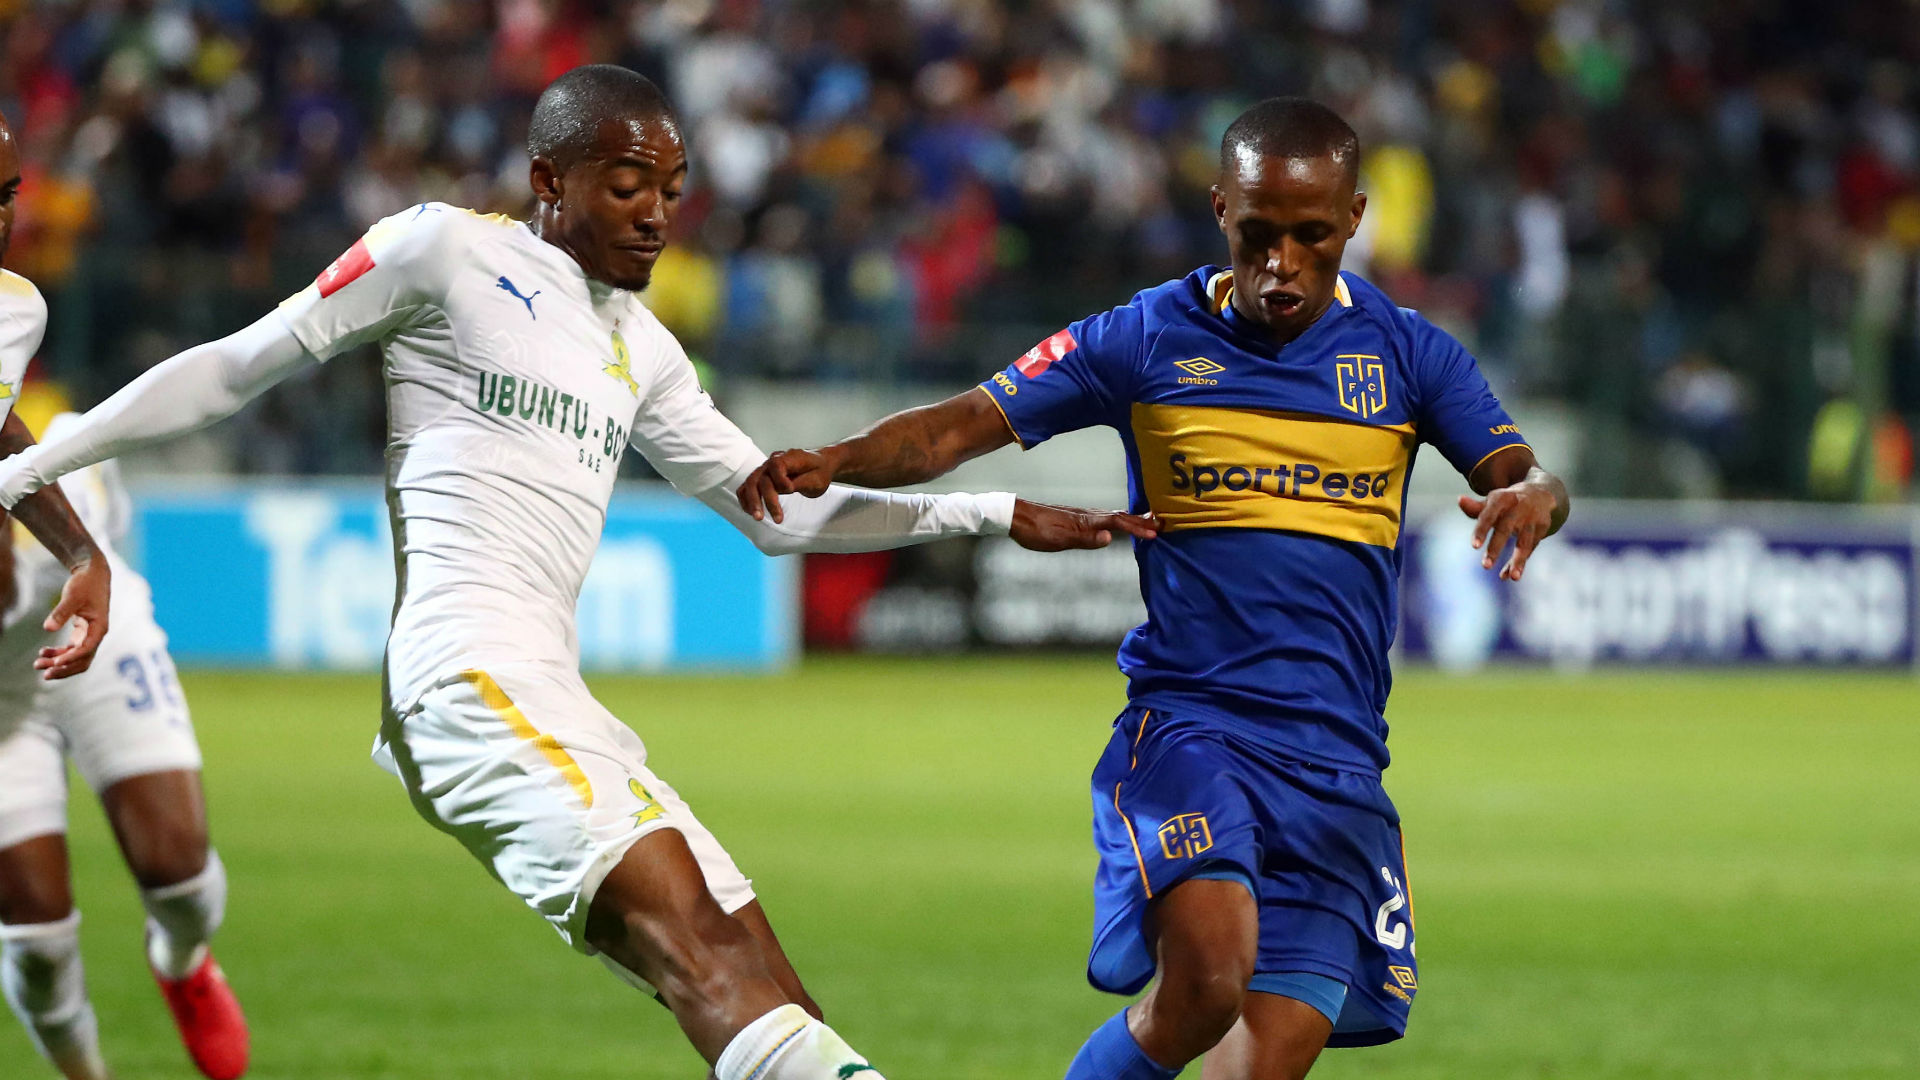 Cape Town City v Mamelodi Sundowns